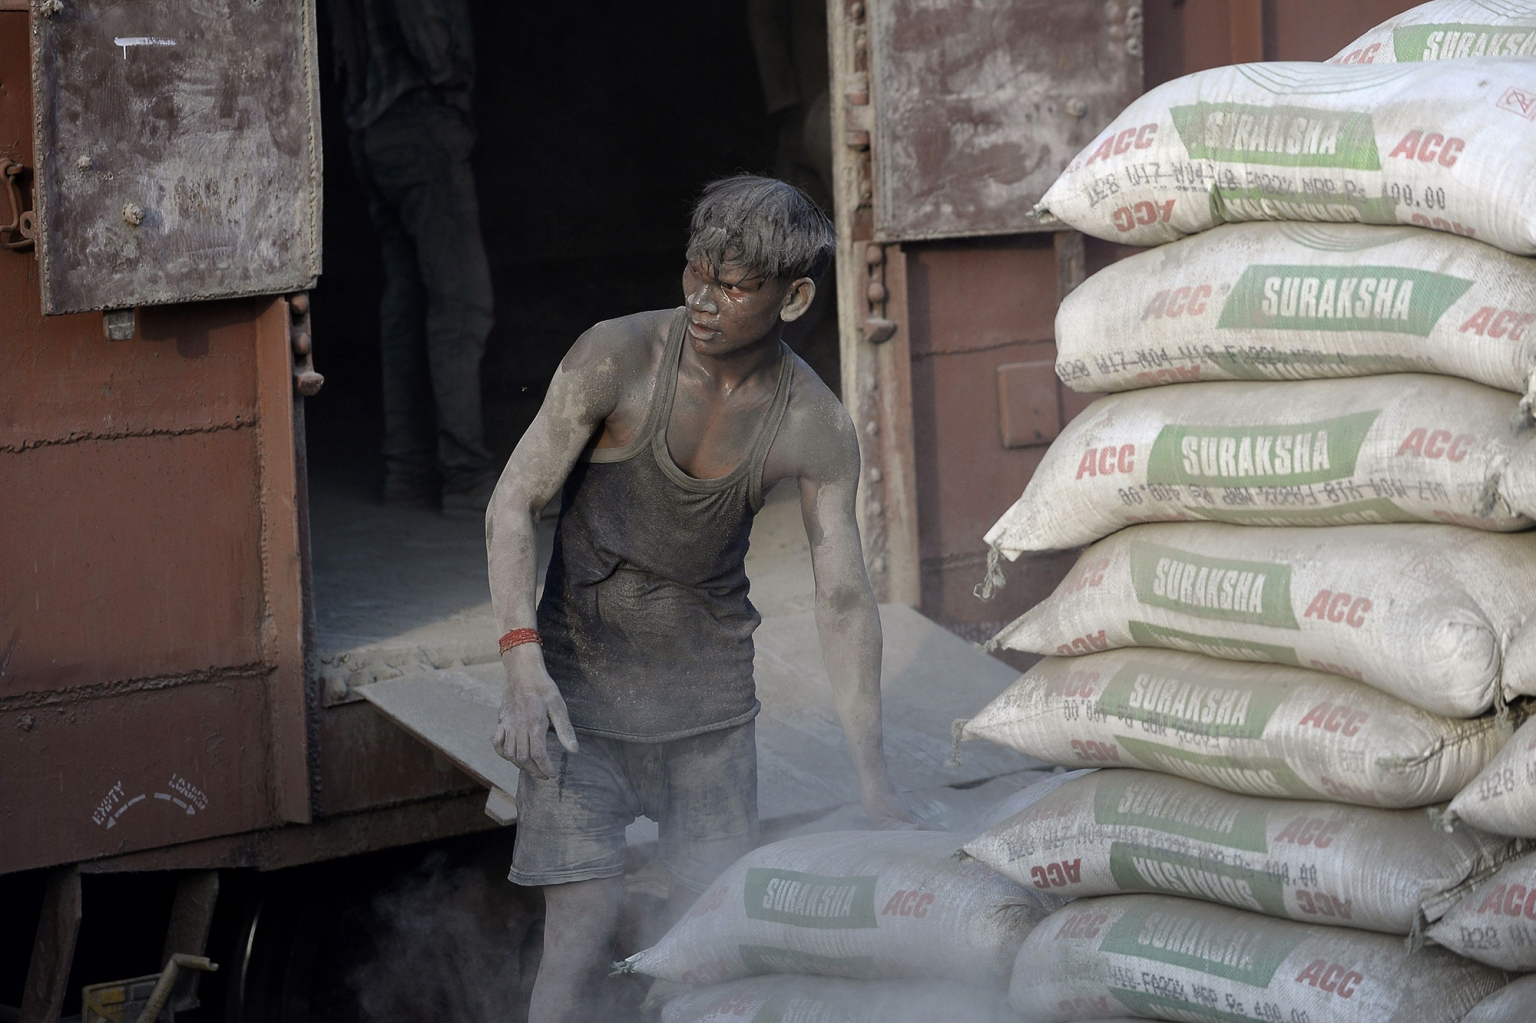 An Indian laborer pauses as he unloads sacks of cement from a goods train at a warehouse in Jalandhar on April 30 ahead of International Labor Day. SHAMMI MEHRA/AFP/Getty Images